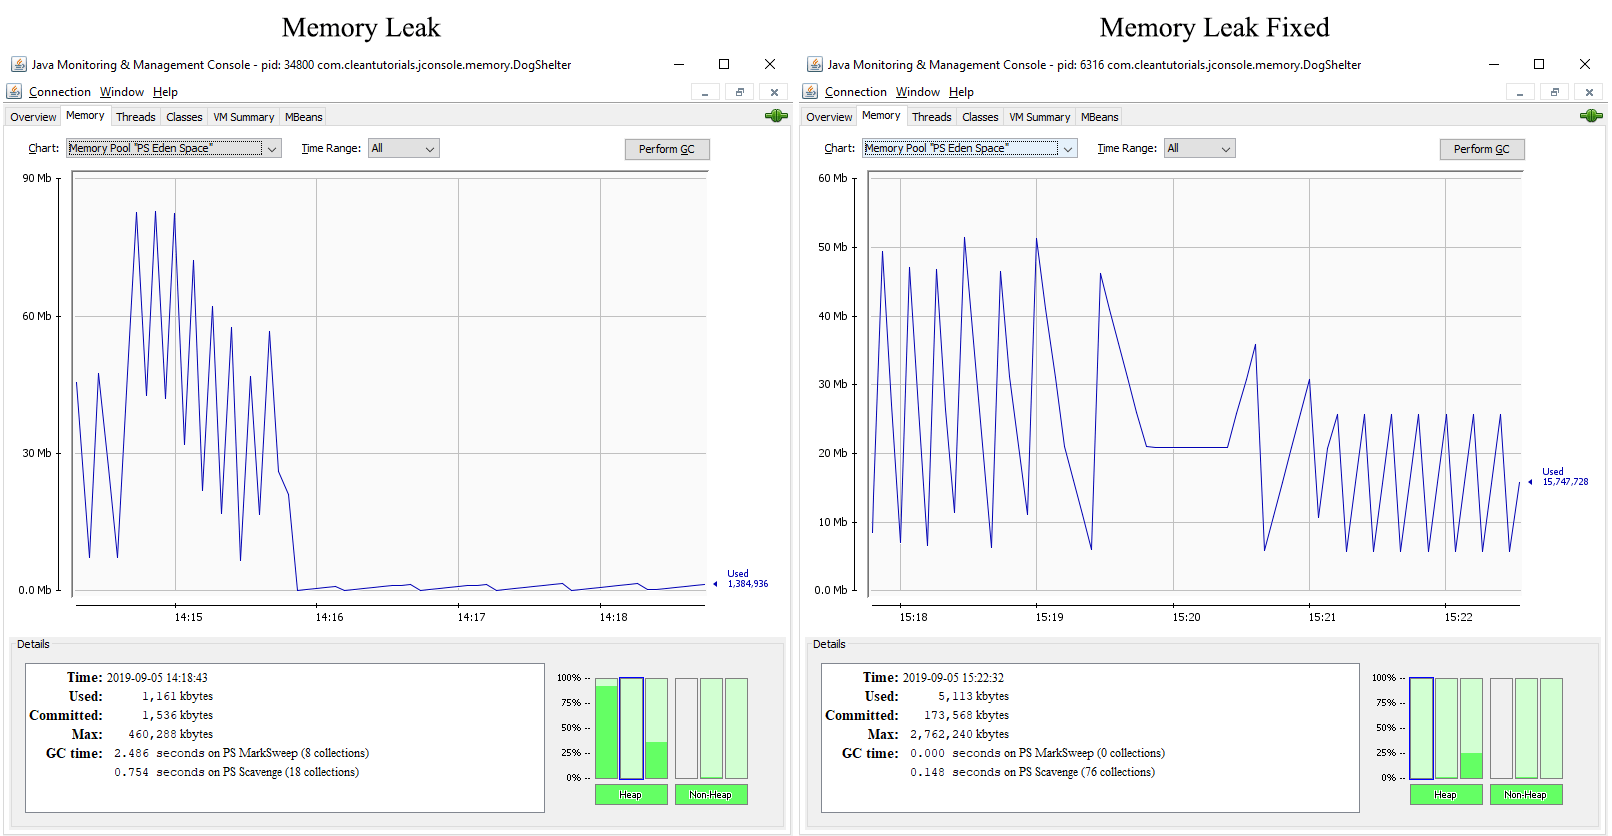 Eden space memory chart comparison for a Java application having a memory leak and without memory leak using JConsole